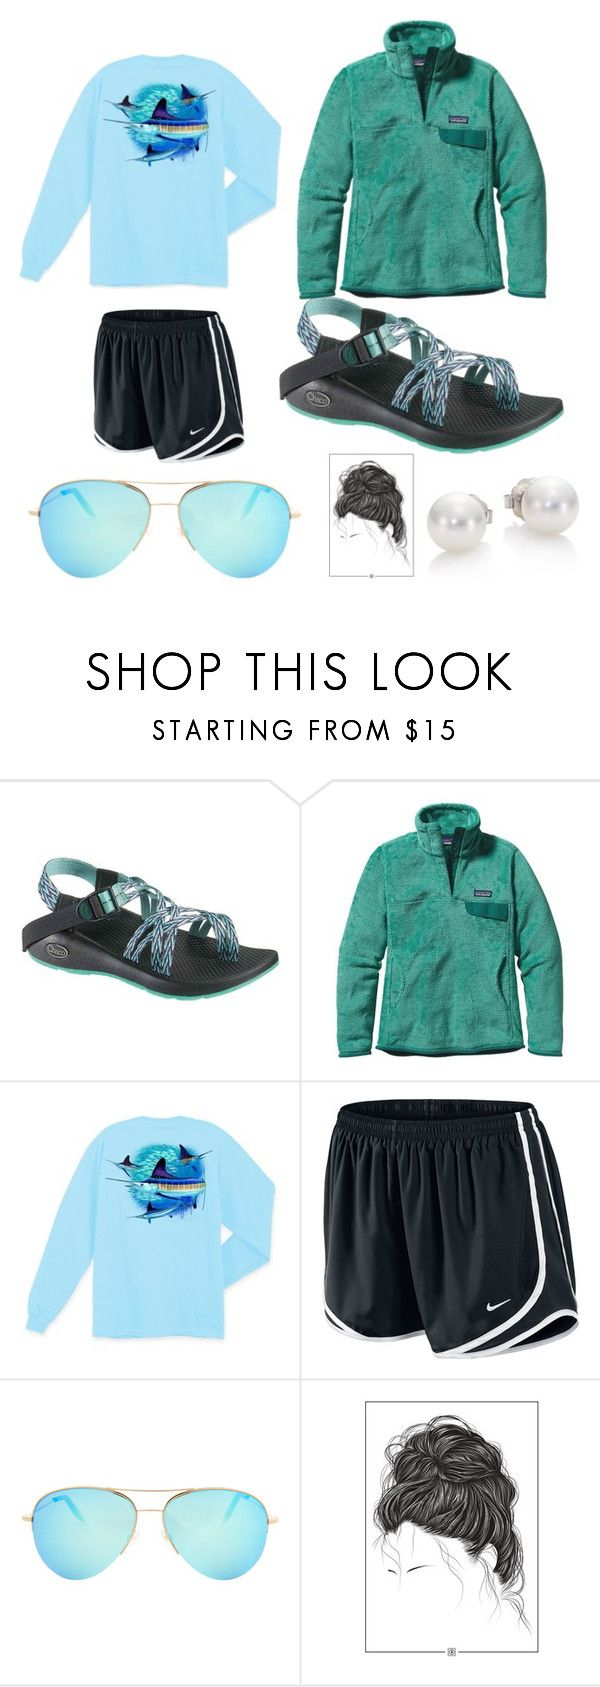 """""""46. Out for the day"""" by segovia0126 ❤ liked on Polyvore featuring Chaco, Patagonia, Guy Harvey, NIKE, Victoria Beckham, Mikimoto, women's clothing, women, female and woman"""